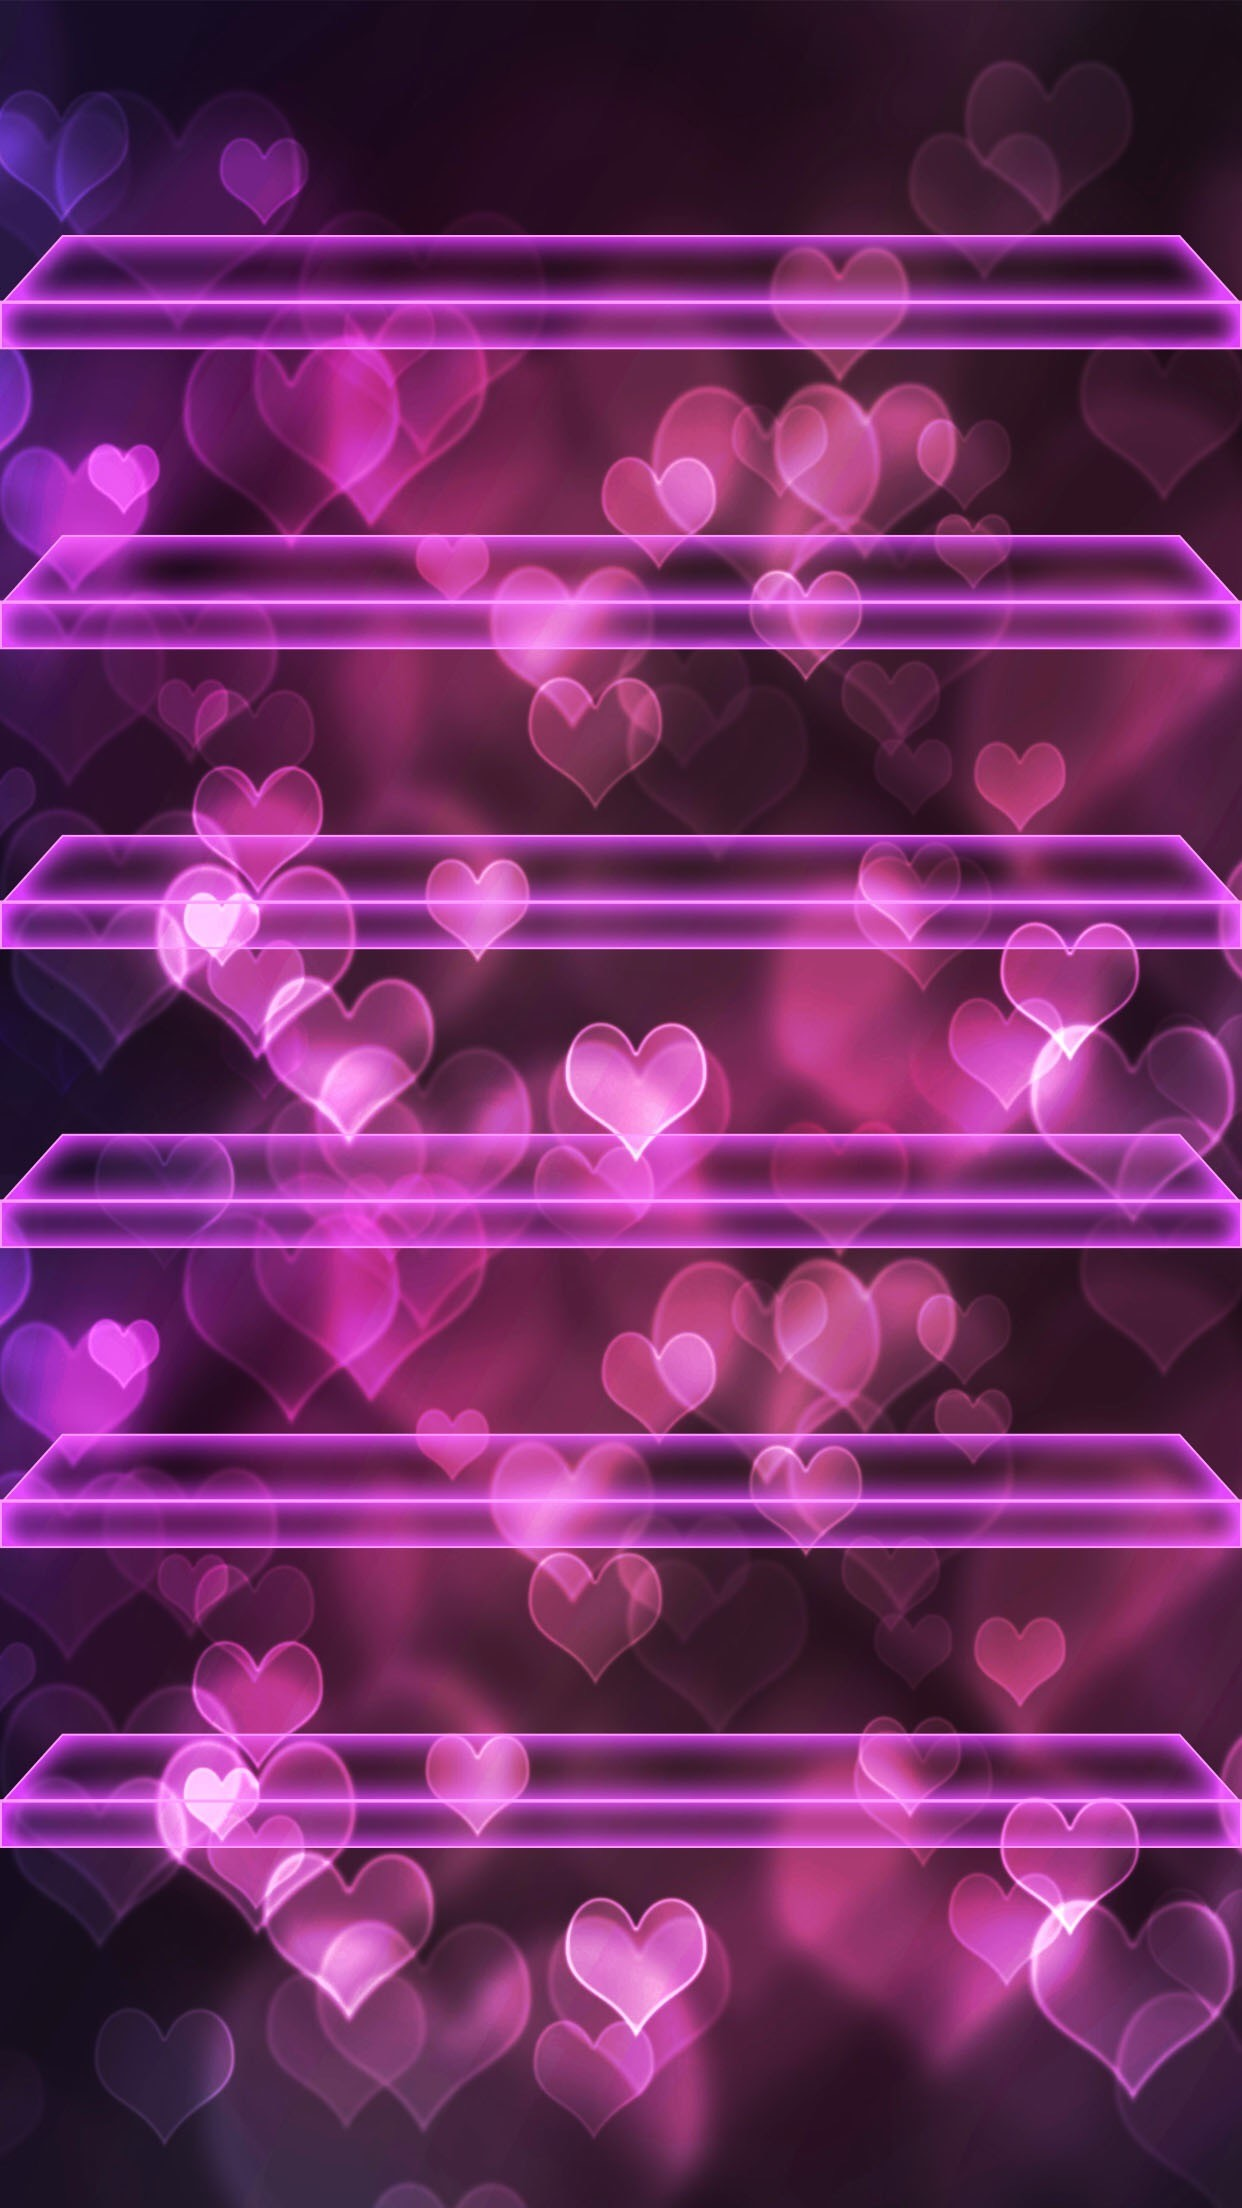 ↑↑TAP AND GET THE FREE APP! Shelves Hearts Bokeh Pink Neon Love Romantic